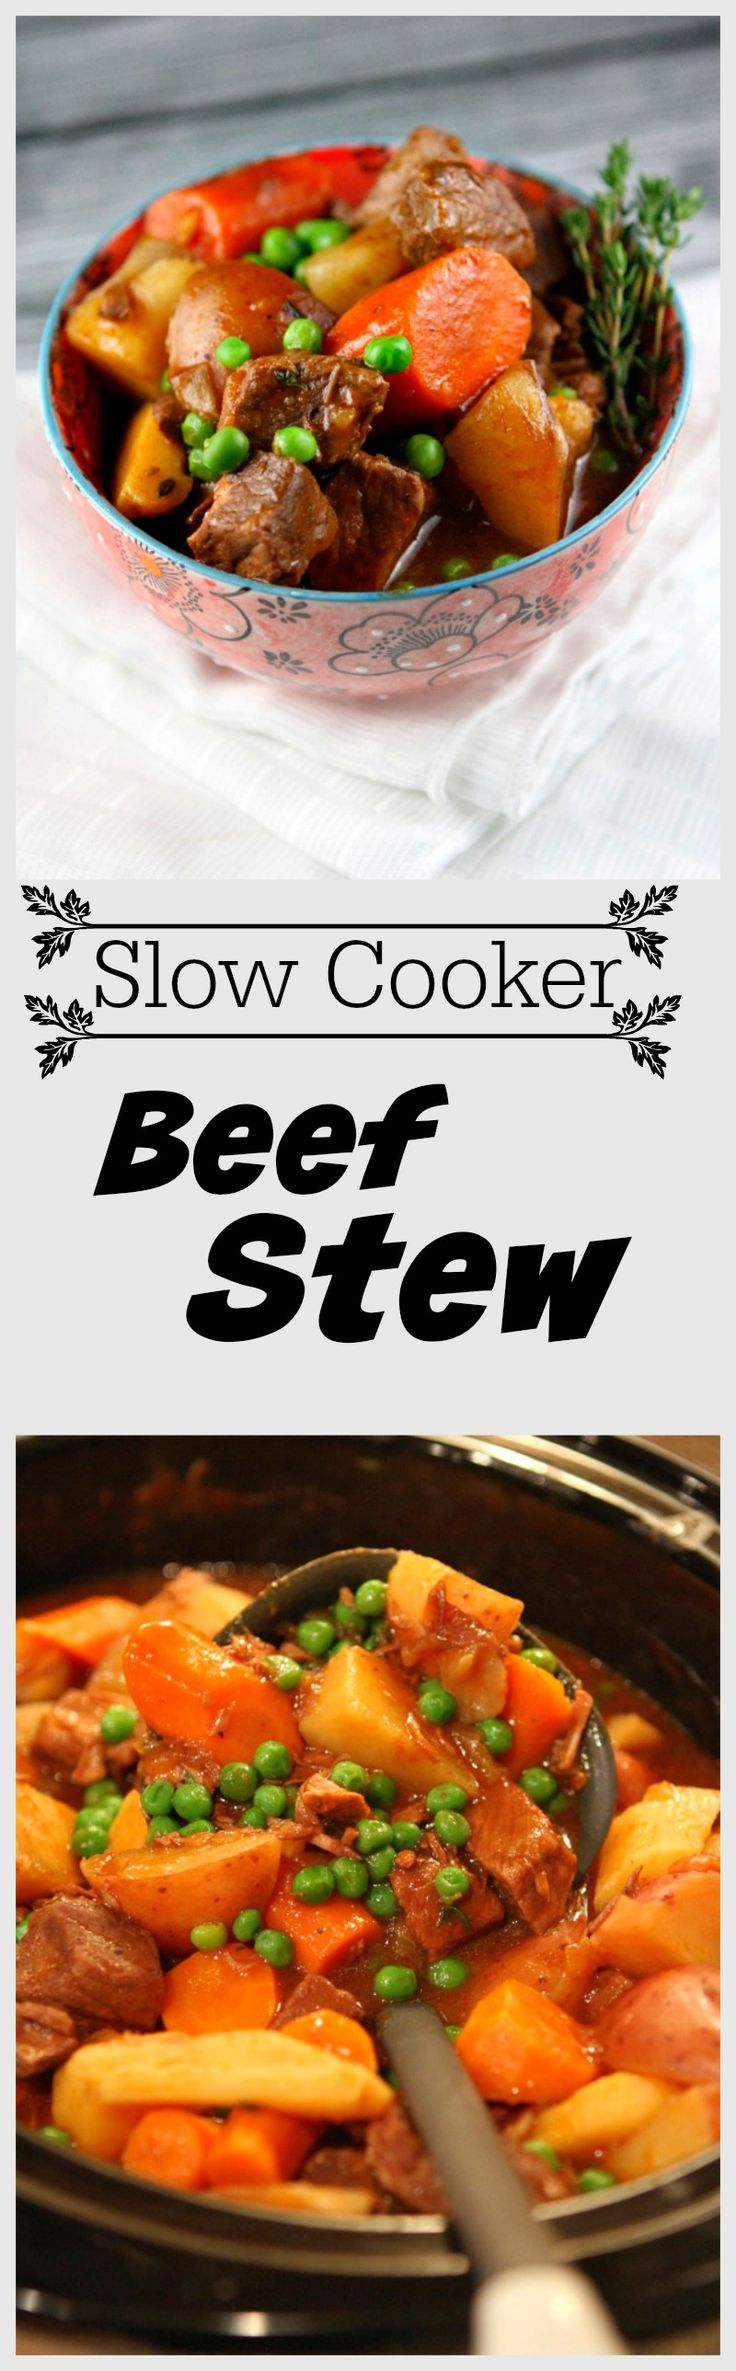 Slow Cooker Beef Stew Recipe - a classic beef stew recipe made in the Crock Pot.  Plus, I share a secret for making sure your veggies don't get mushy in the slow cooking process!